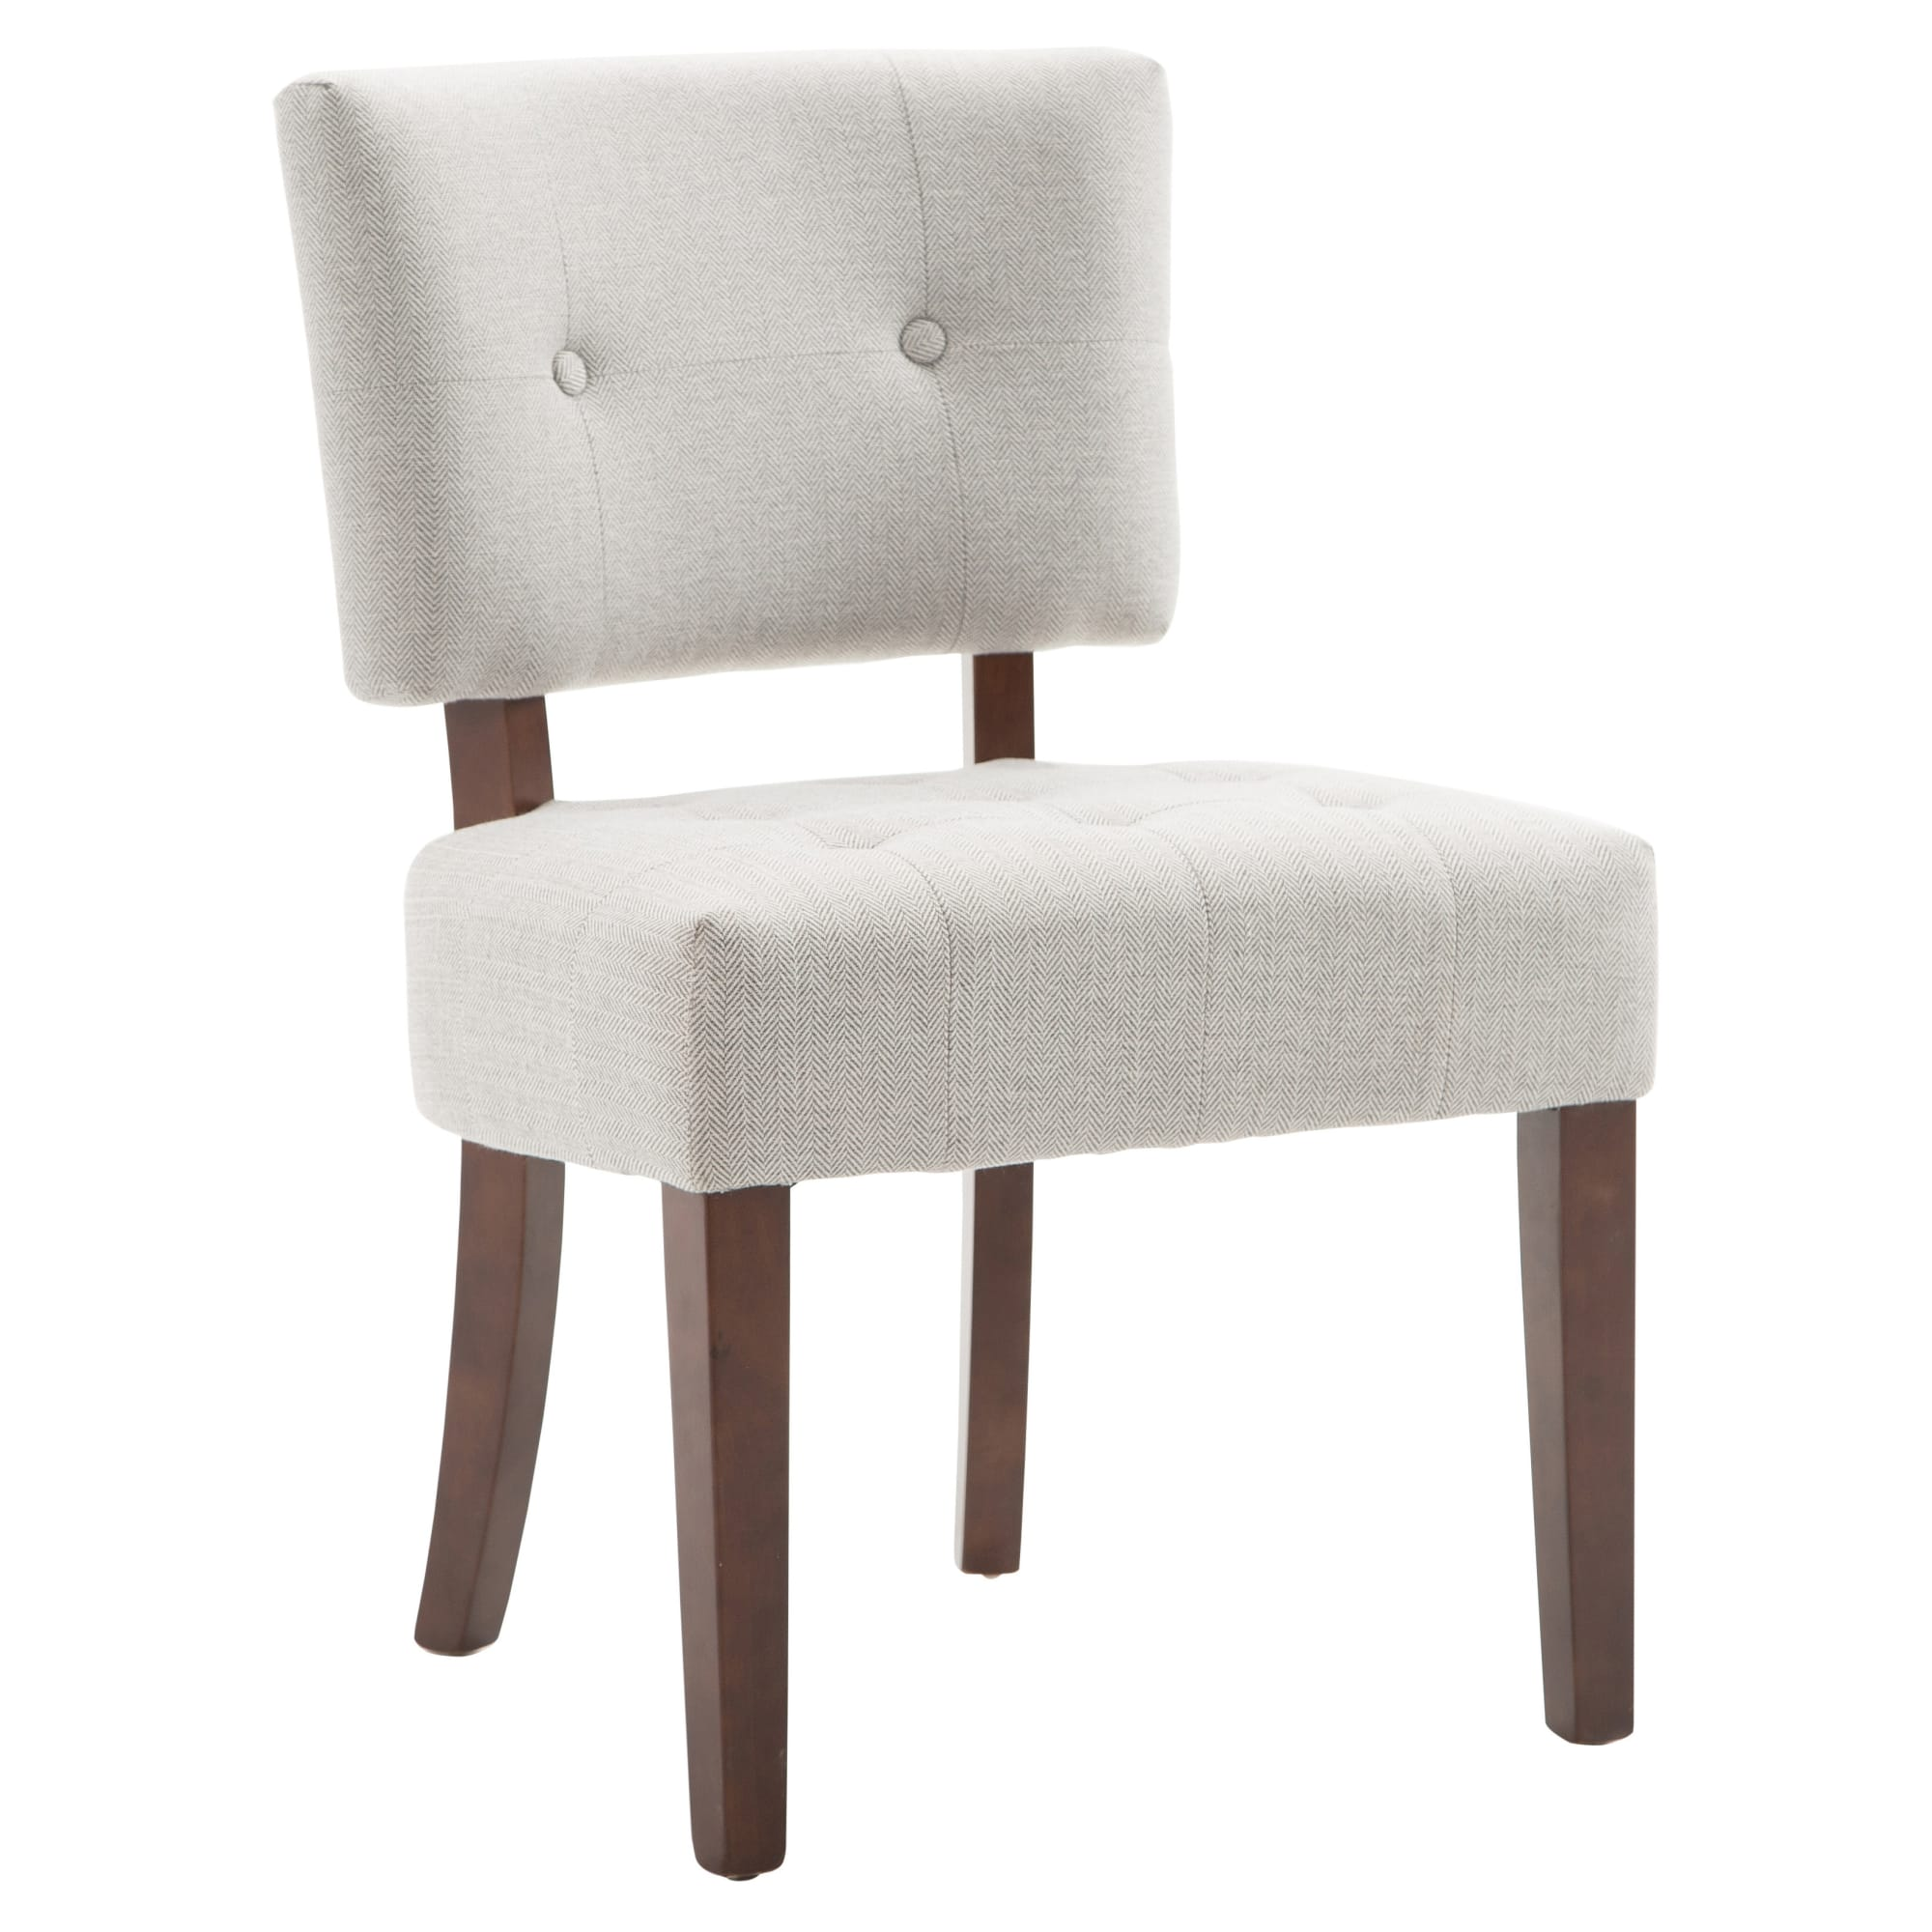 Orsa Upholstered Chair